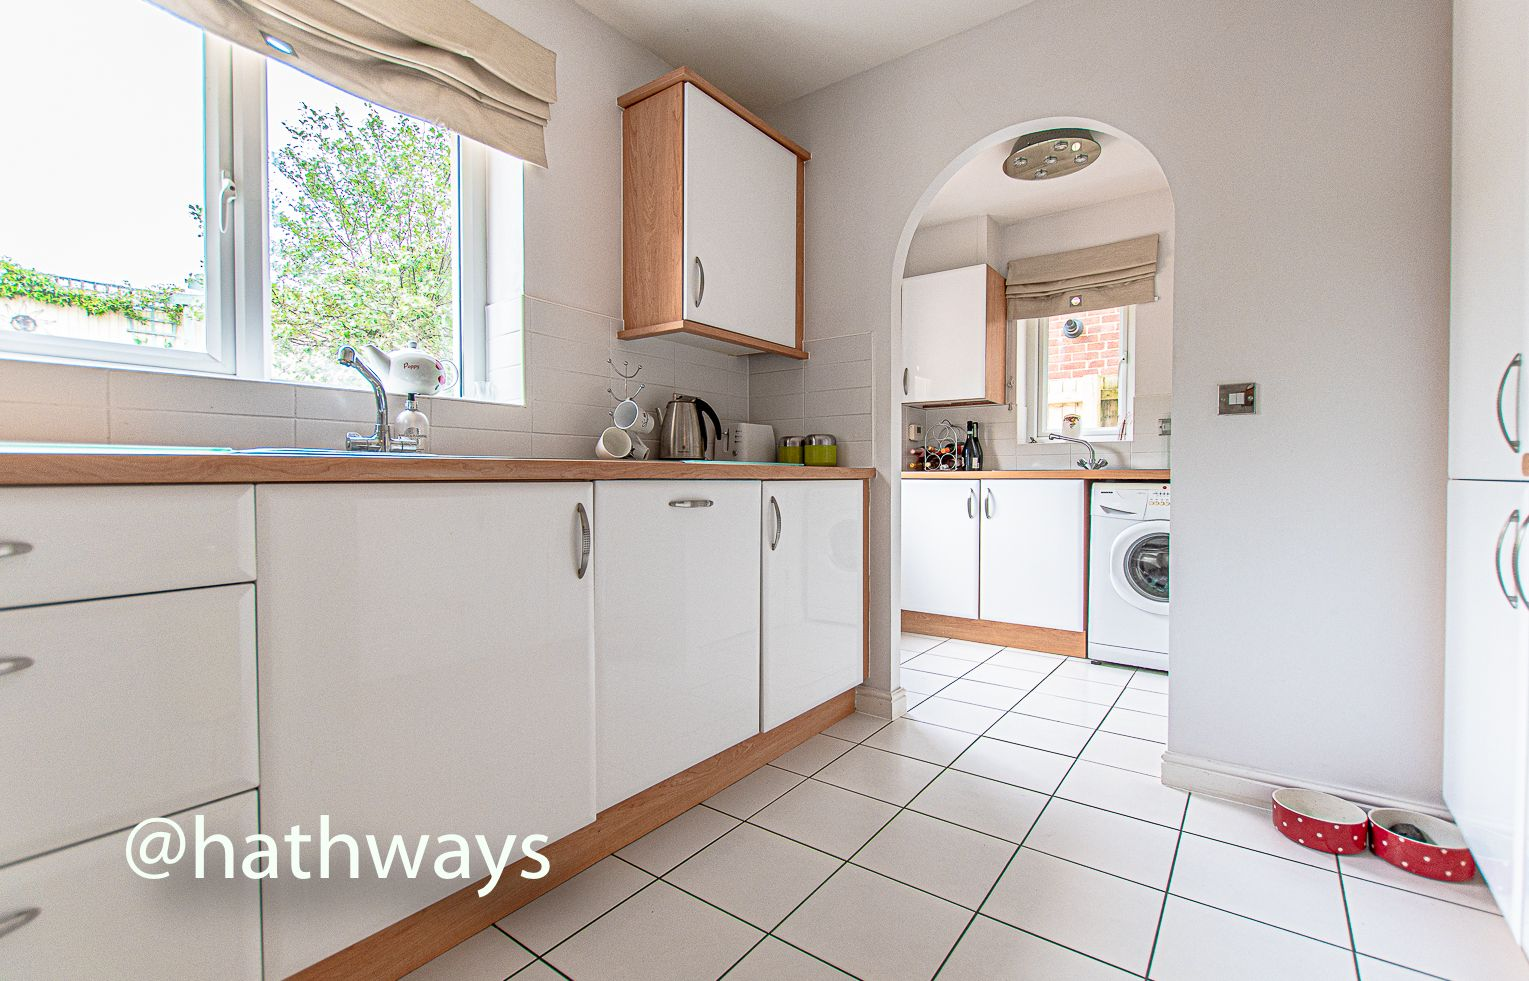 4 bed house for sale in Ladyhill Road  - Property Image 12